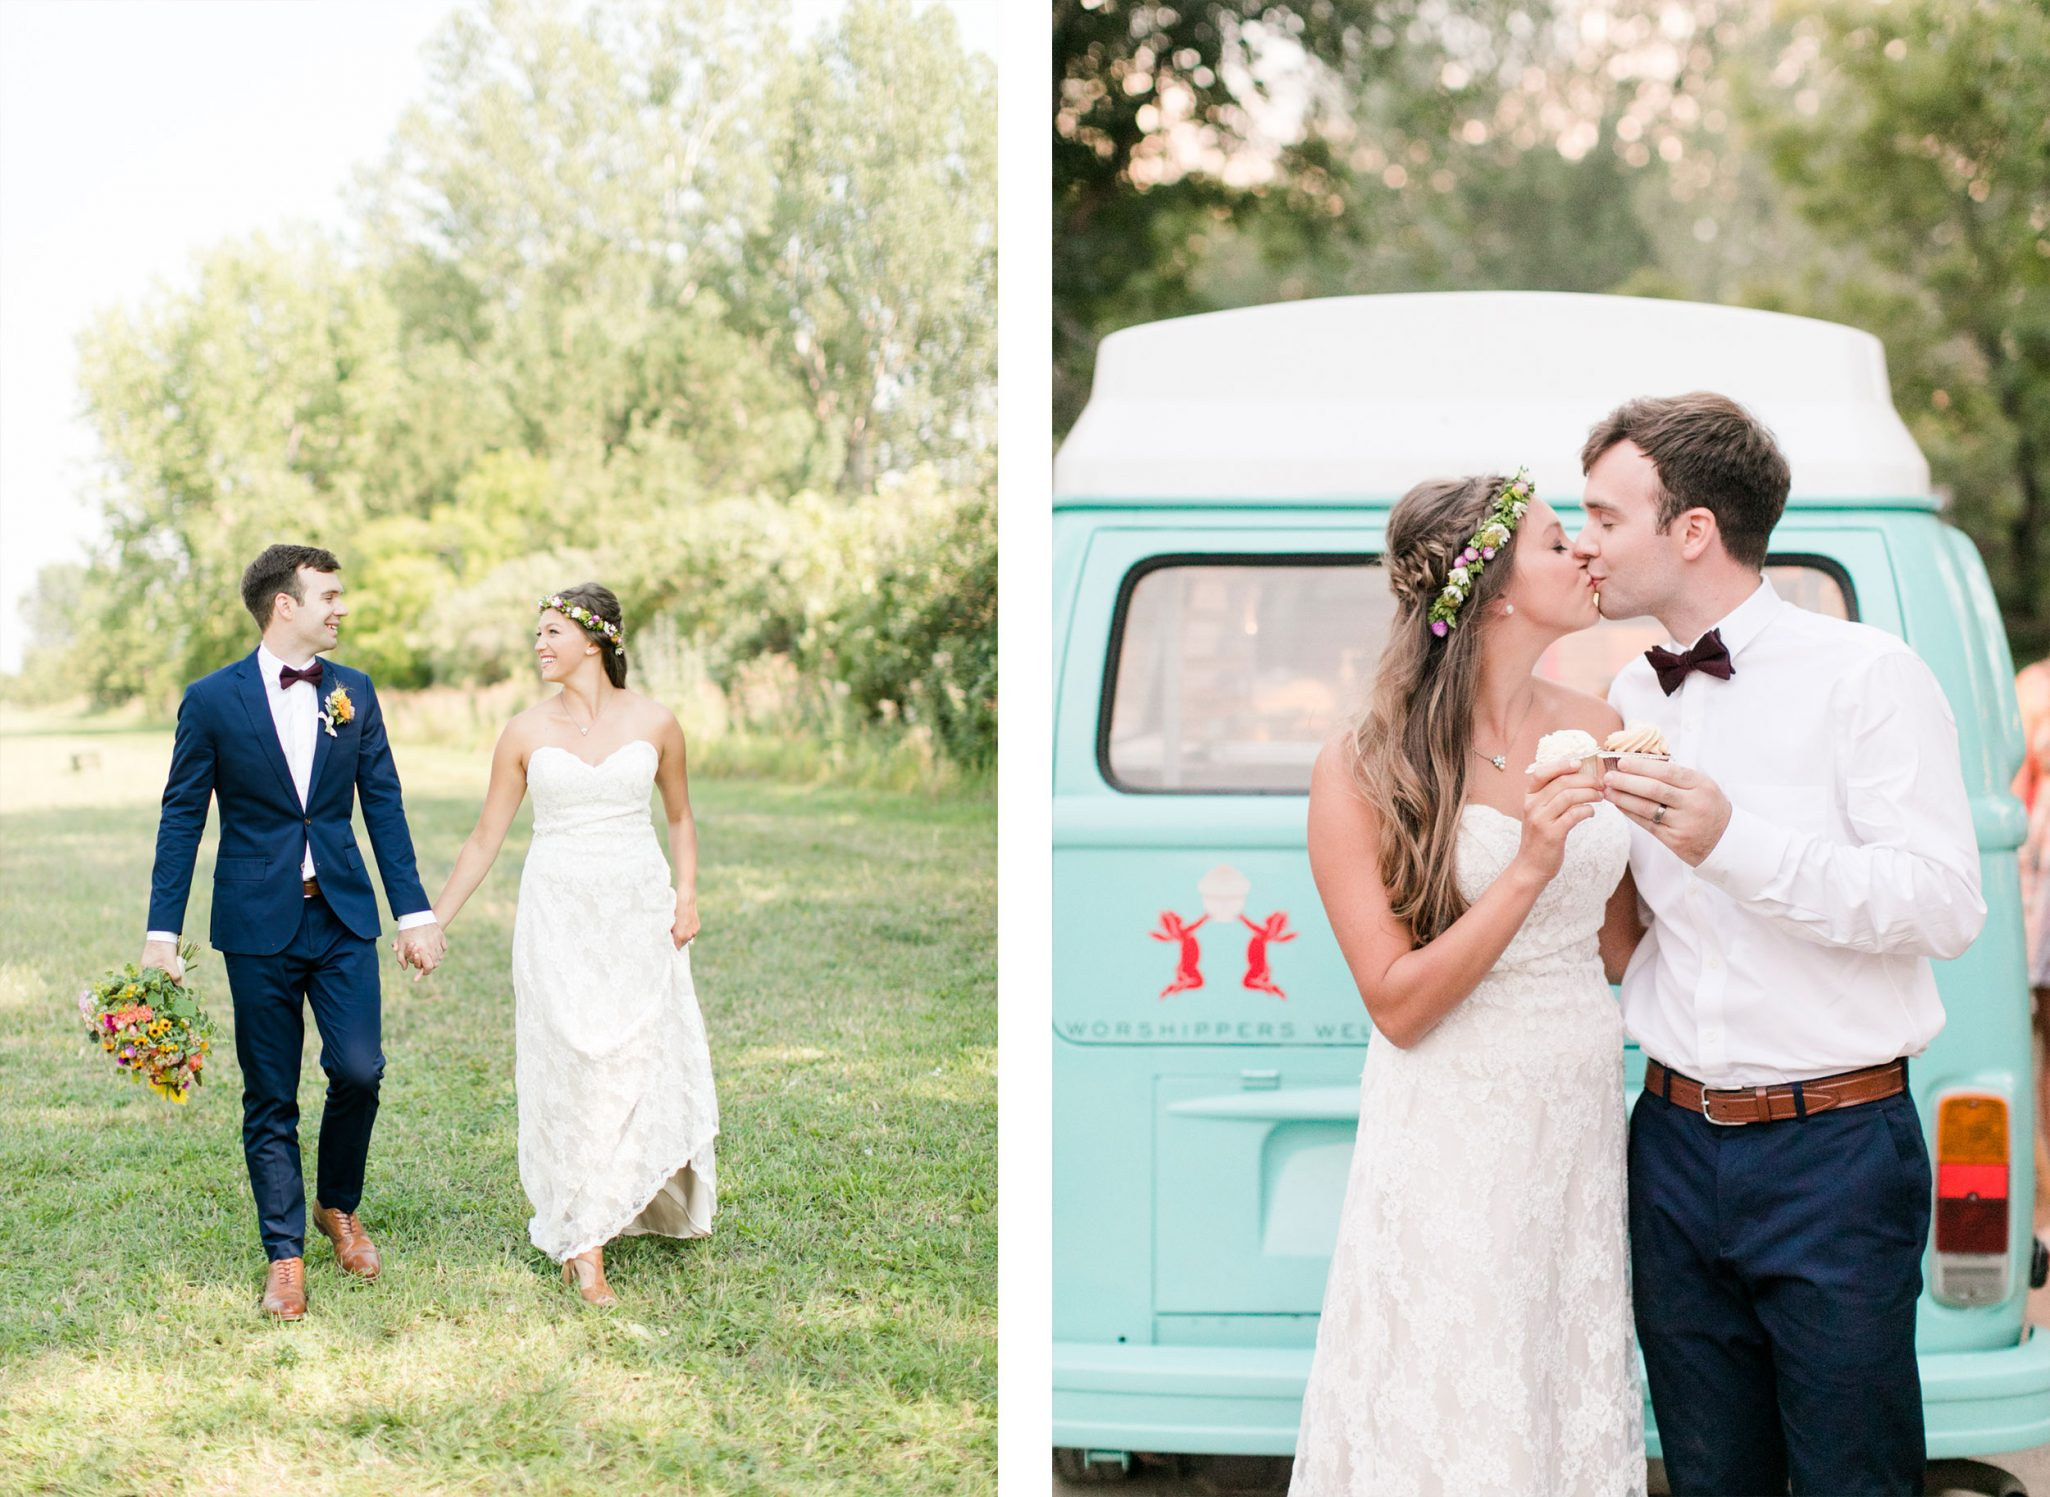 Bride + Groom | A Boho Garden Wedding in Colorado